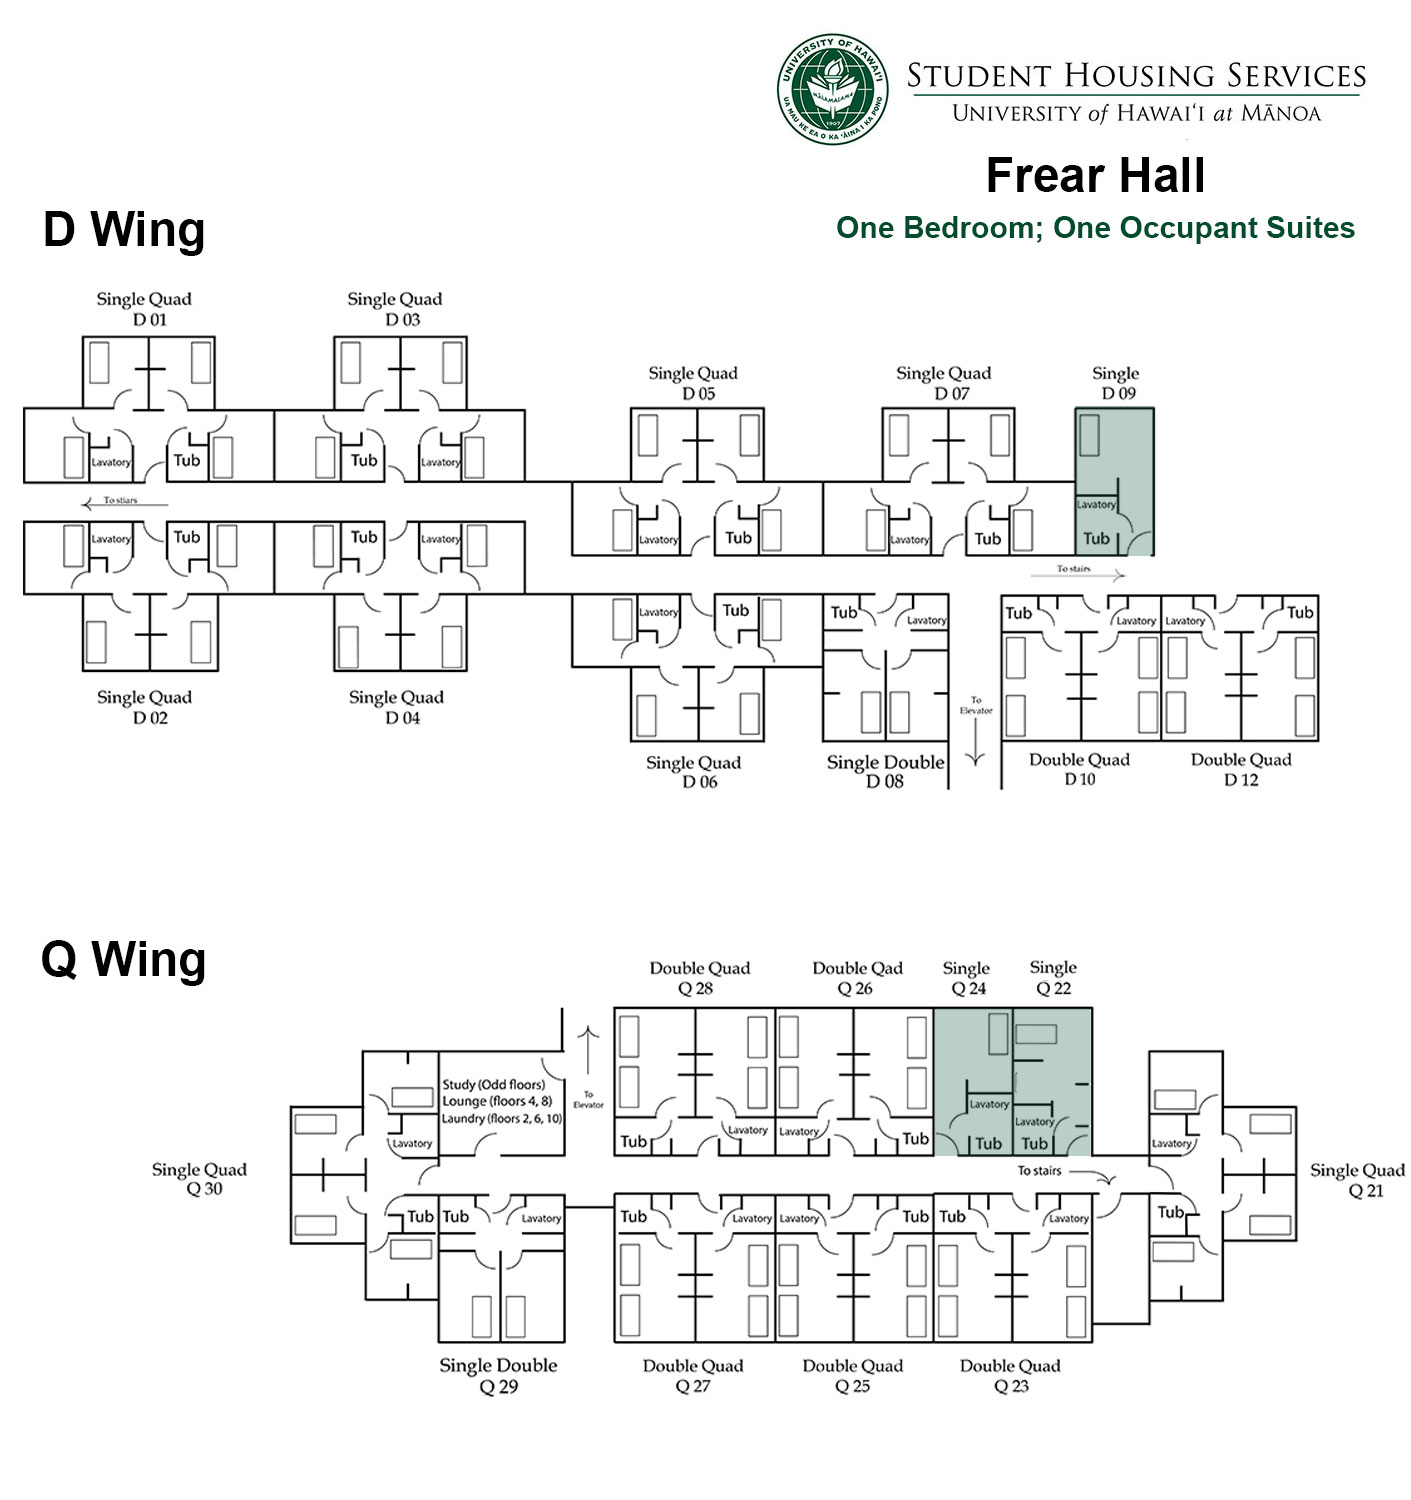 Frear Hall One Bed; One Occupant Floor Plan